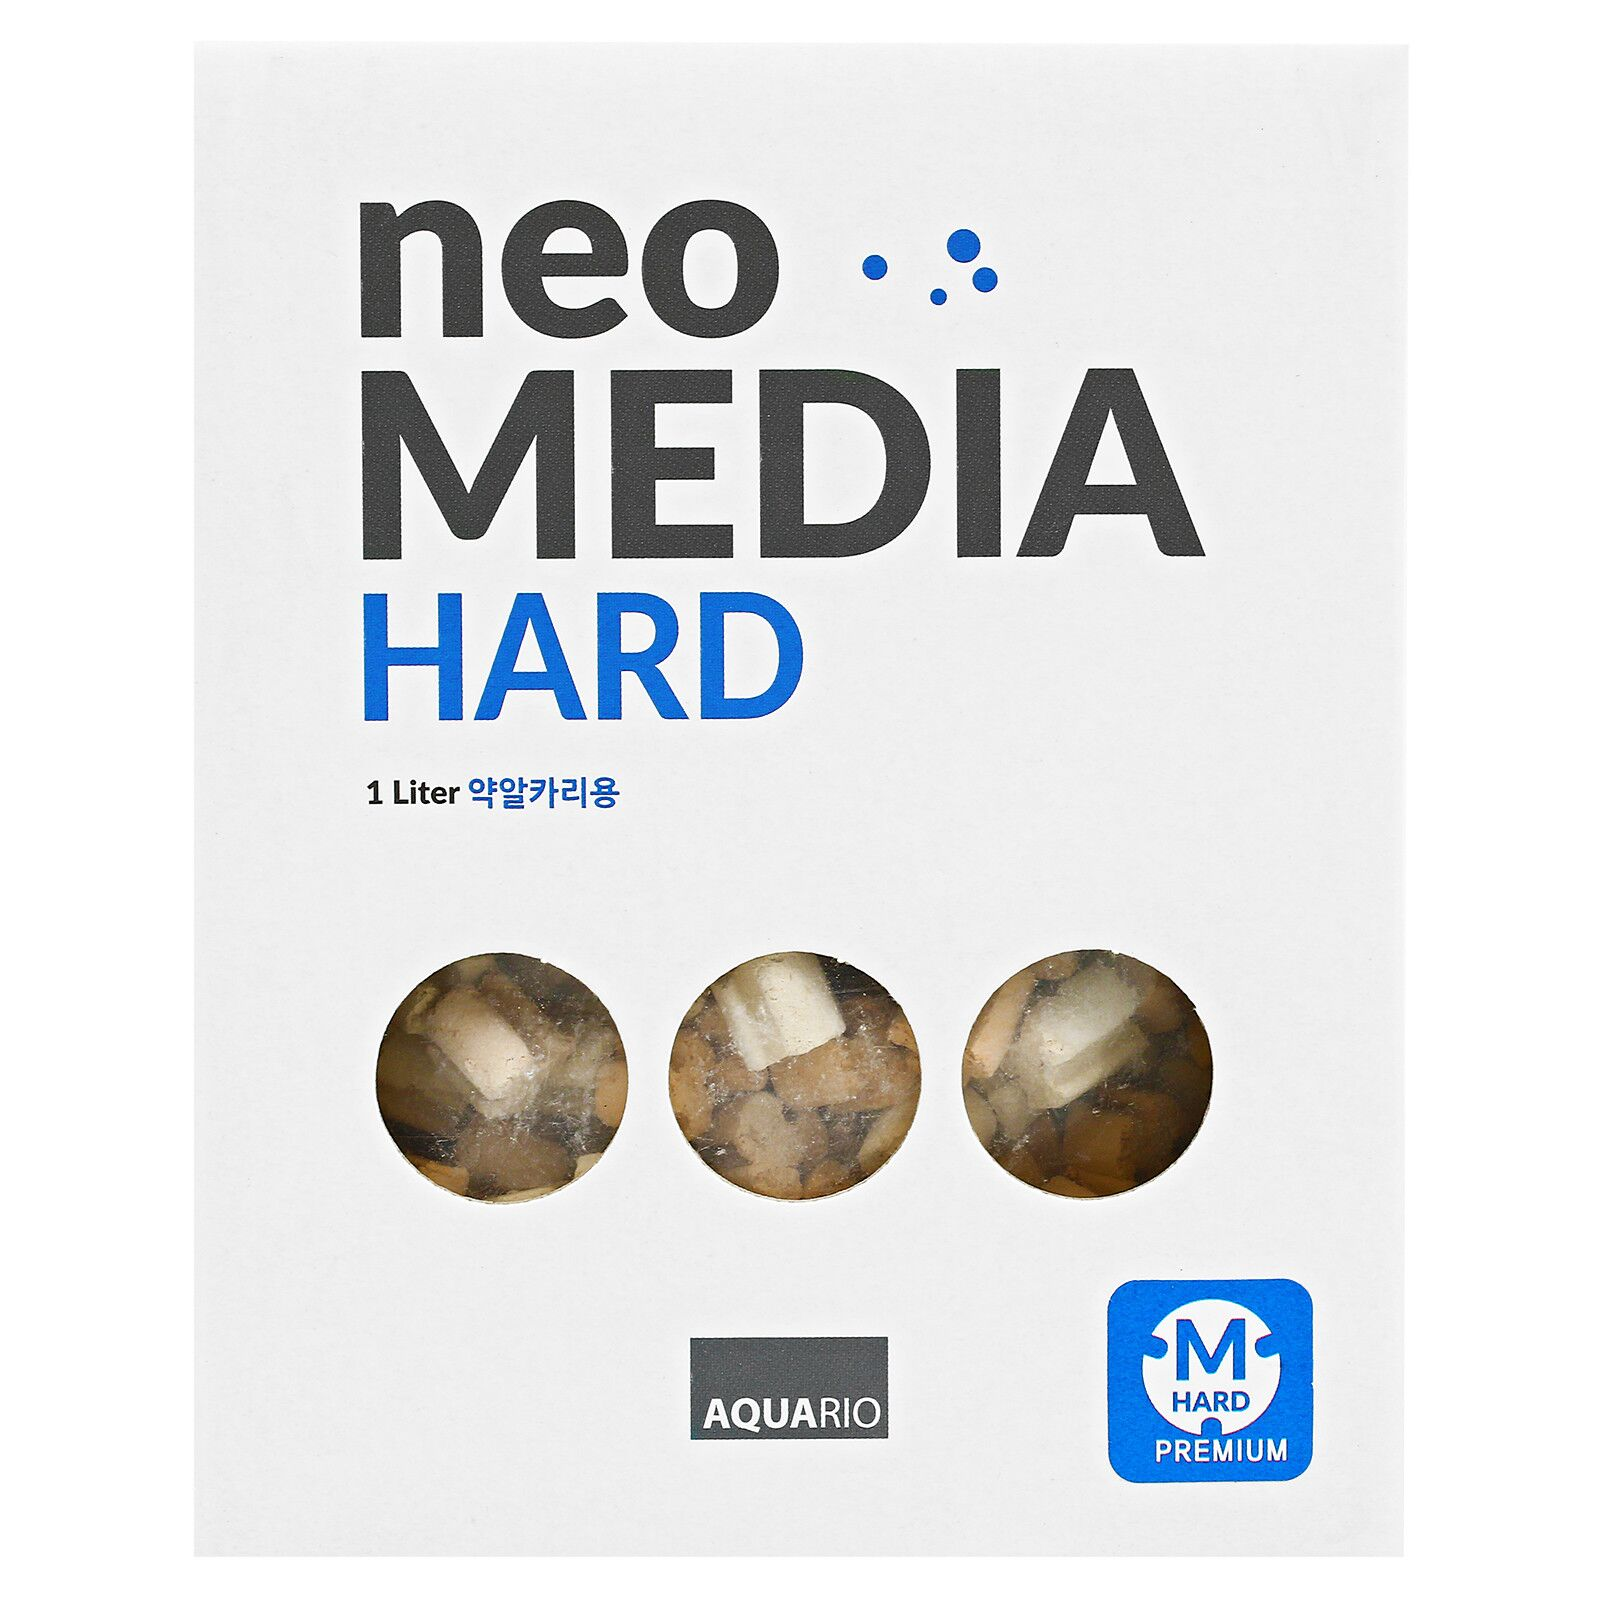 AQUARIO - Neo Media - Premium - M - Hard